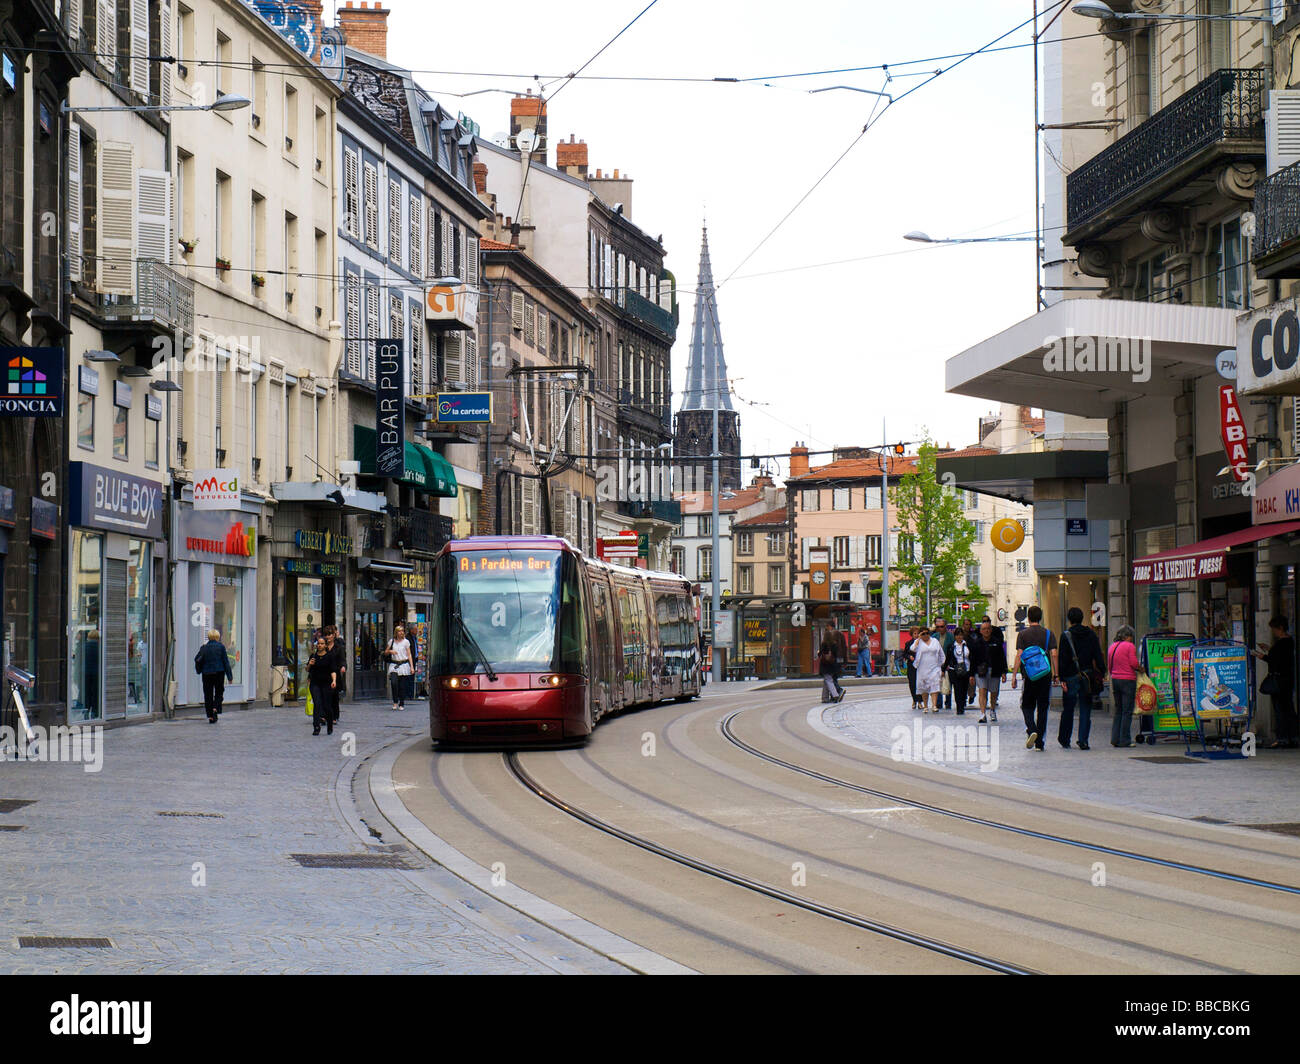 tram in the city of clermont ferrand auvergne france stock photo royalty free image 24244180. Black Bedroom Furniture Sets. Home Design Ideas